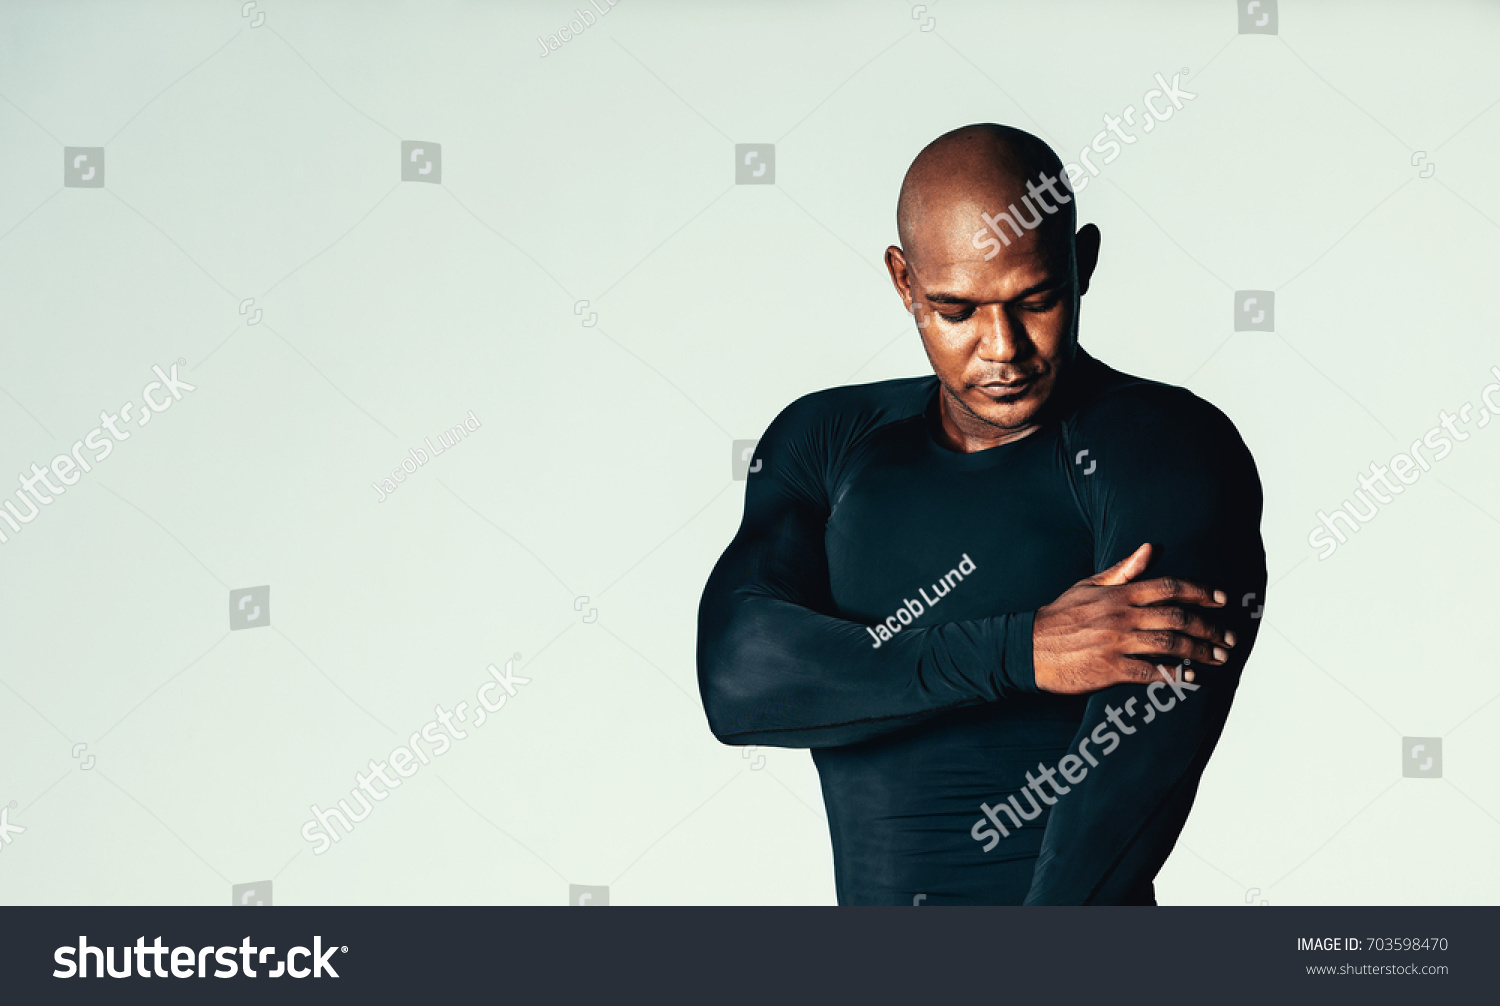 f55a9b8f9 Portrait of handsome young men in gym t-shirt over grey background. African  male